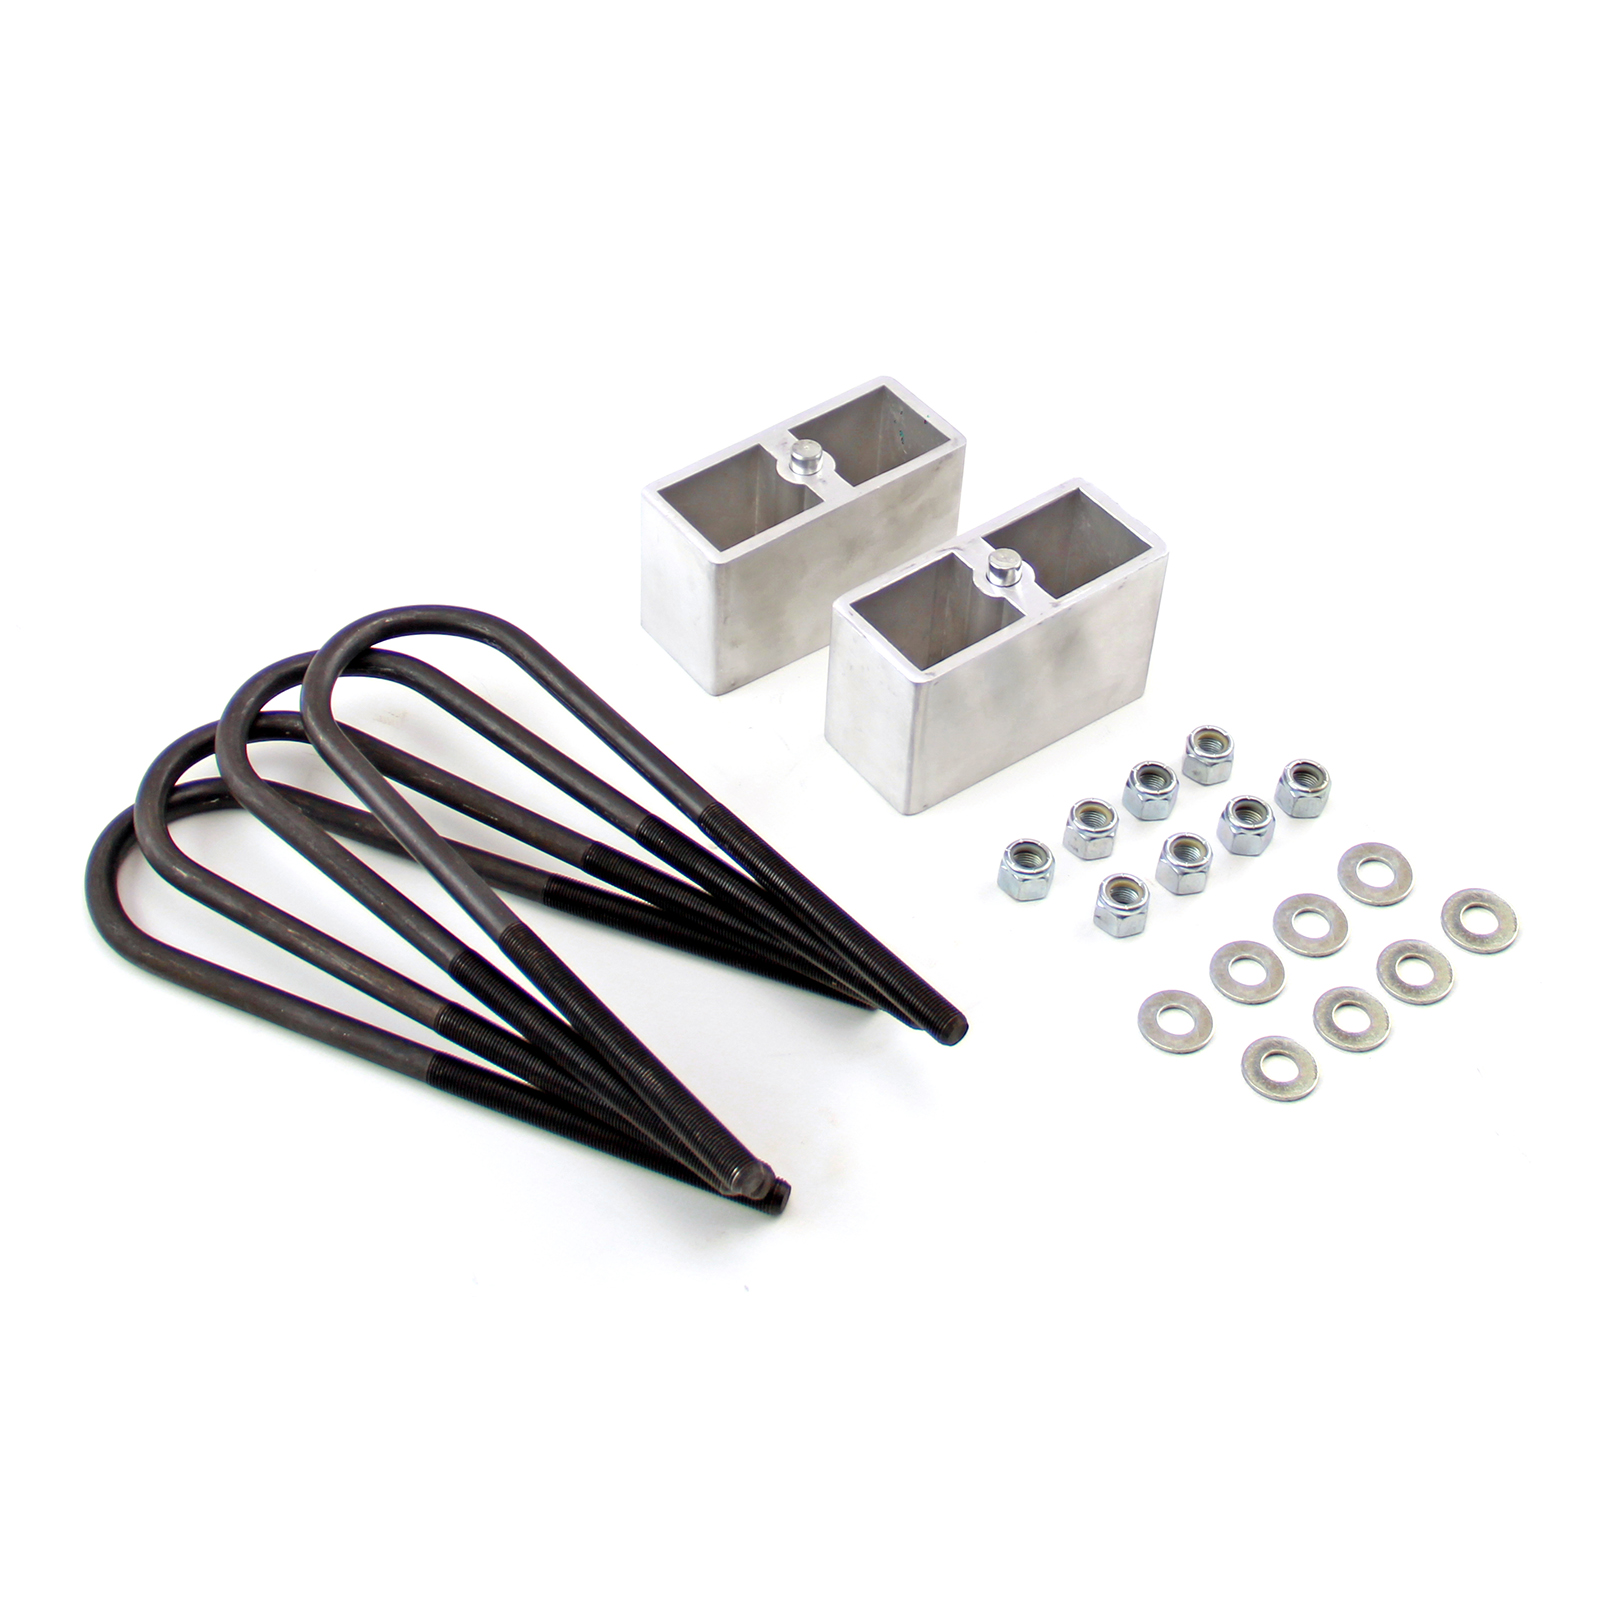 "3"" Lift And Lowering Kit Aluminum Block With U-Bolts And Hardware"